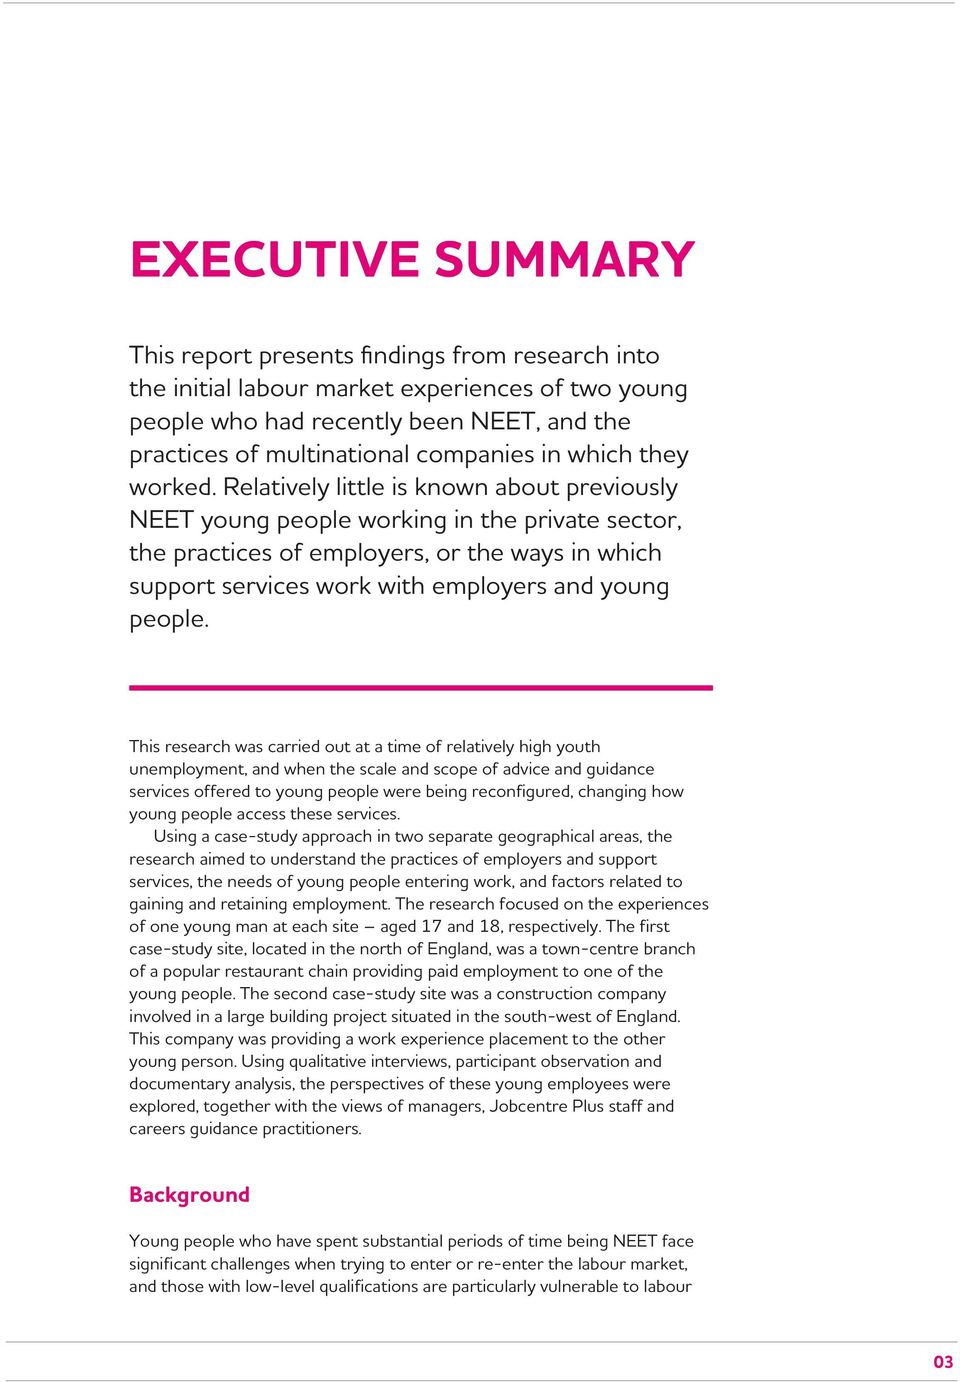 Relatively little is known about previously NEET young people working in the private sector, the practices of employers, or the ways in which support services work with employers and young people.